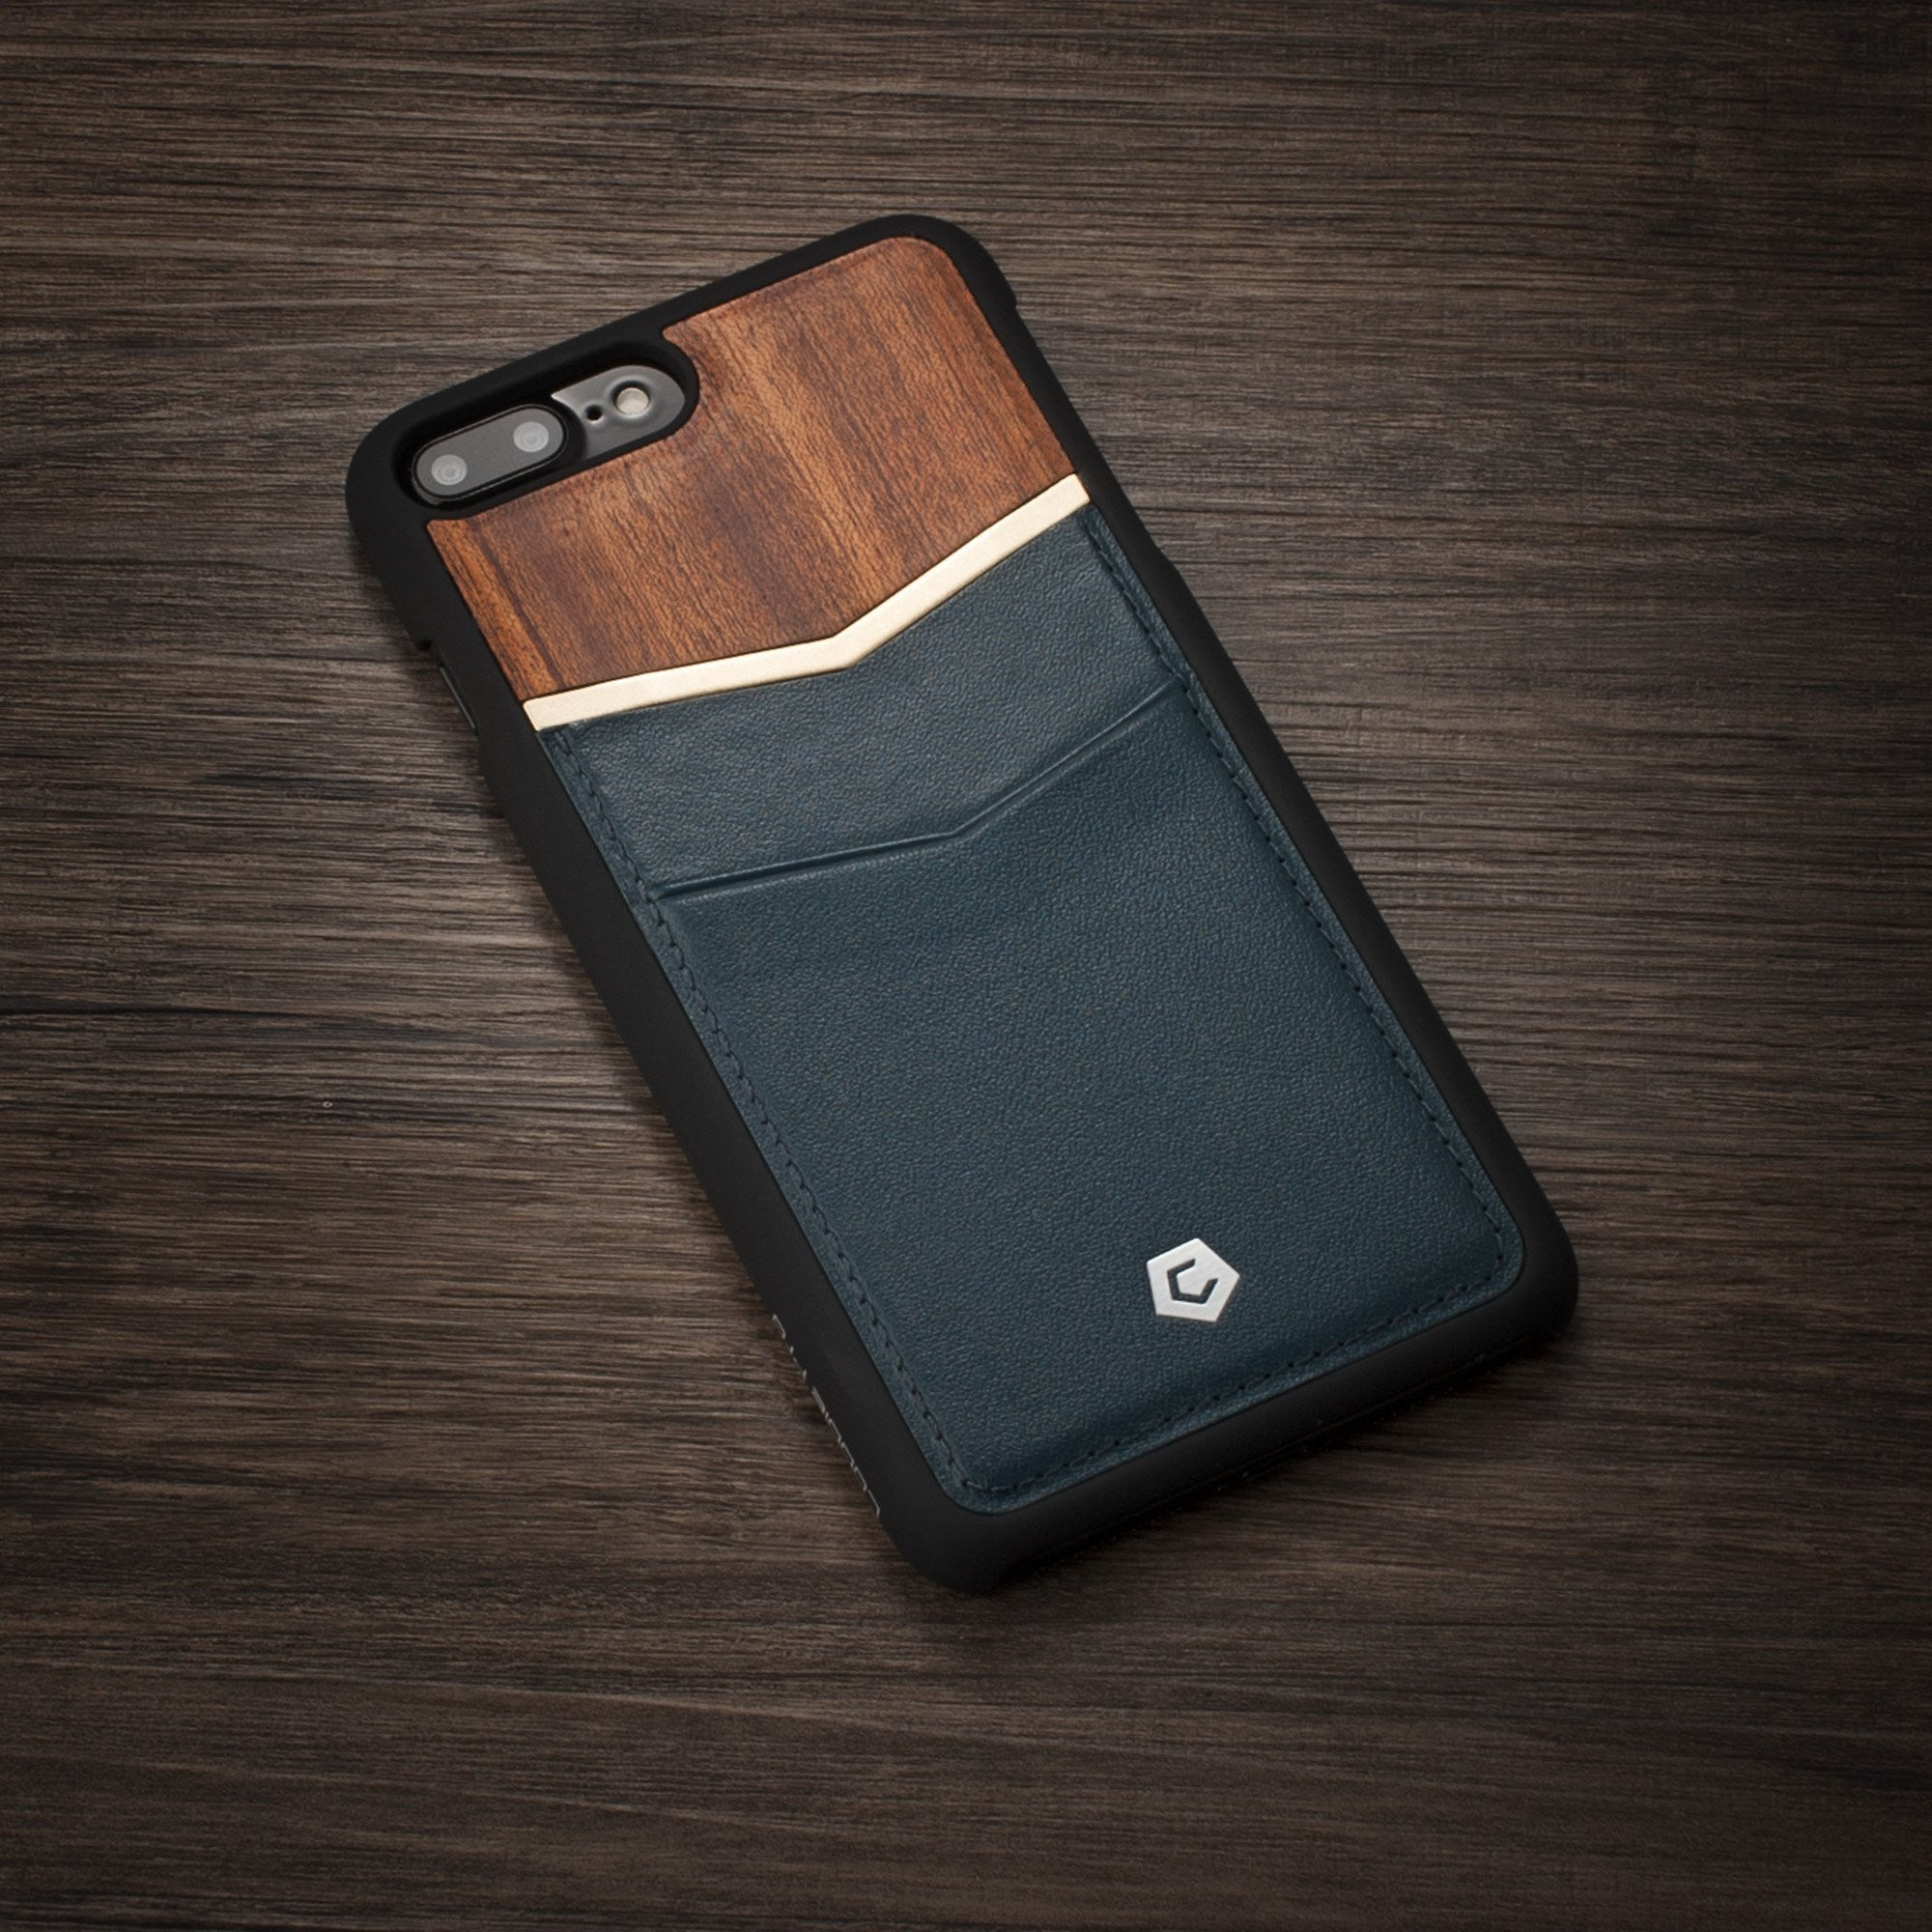 the latest 3cbac 96f77 Dark Blue/Cherry Wood Genuine Leather Back Cover with Card Slot for iPhone  7 Plus / 8 Plus